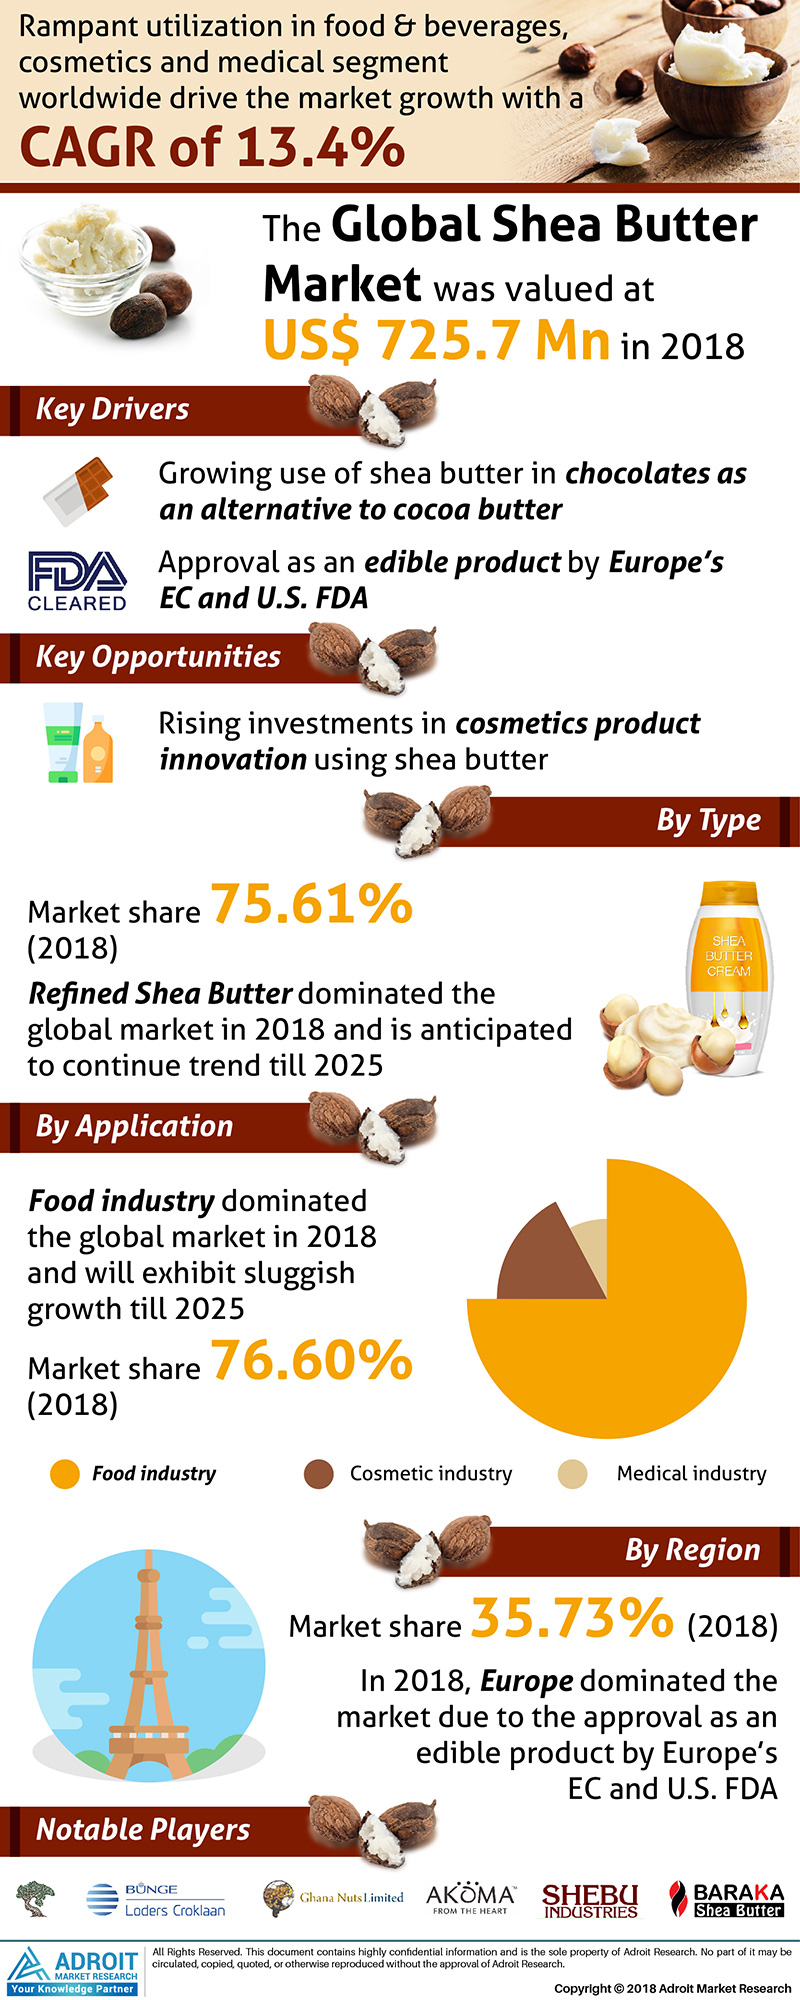 Global Shea Butter Market Size 2018 By Type, Application, Region and Forecast 2019 to 2025